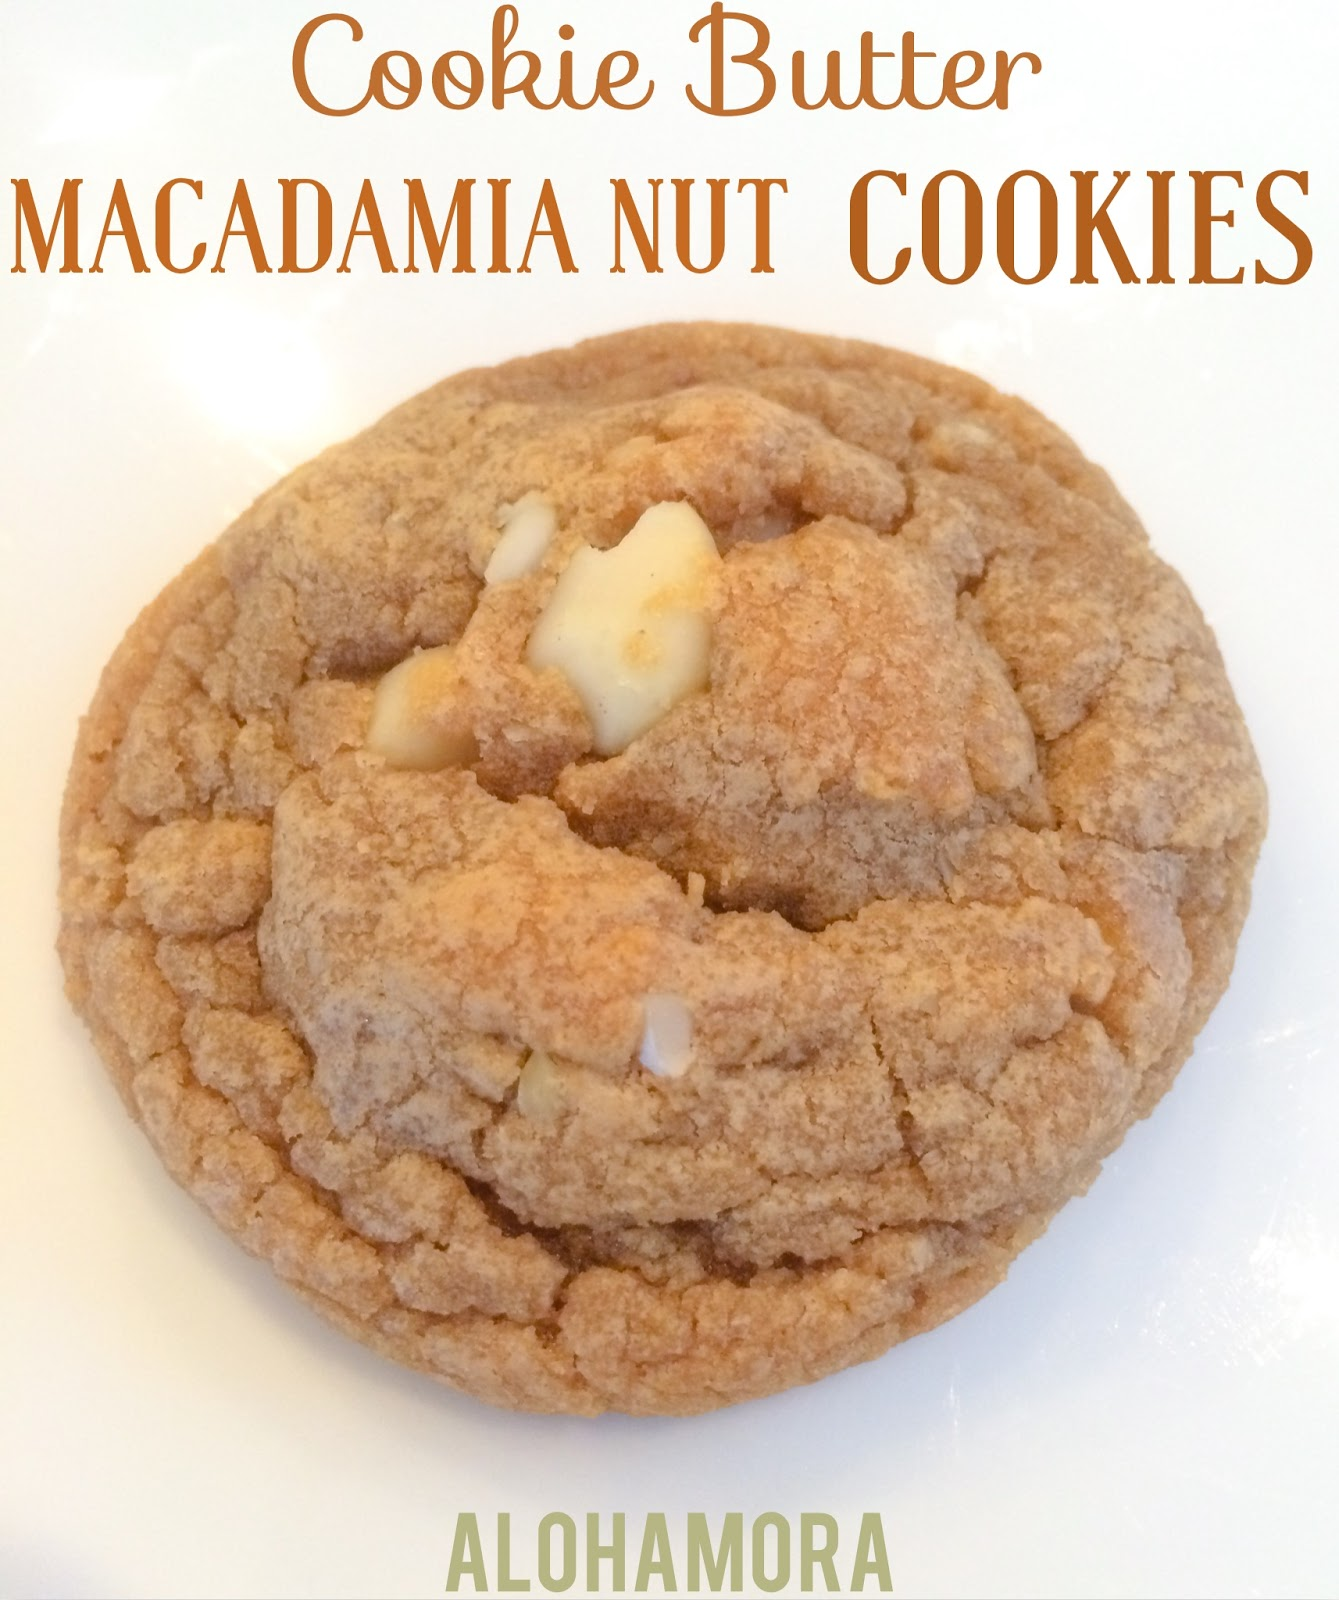 Cookie Butter Macadamia Nut Cookies.  Delicious sweet rich flavor with a salty crunch from the nuts.  Original and unique cookie with a one of a kind flavor.  Created by Alohamora Open a Book http://www.alohamoraopenabook.blogspot.com/